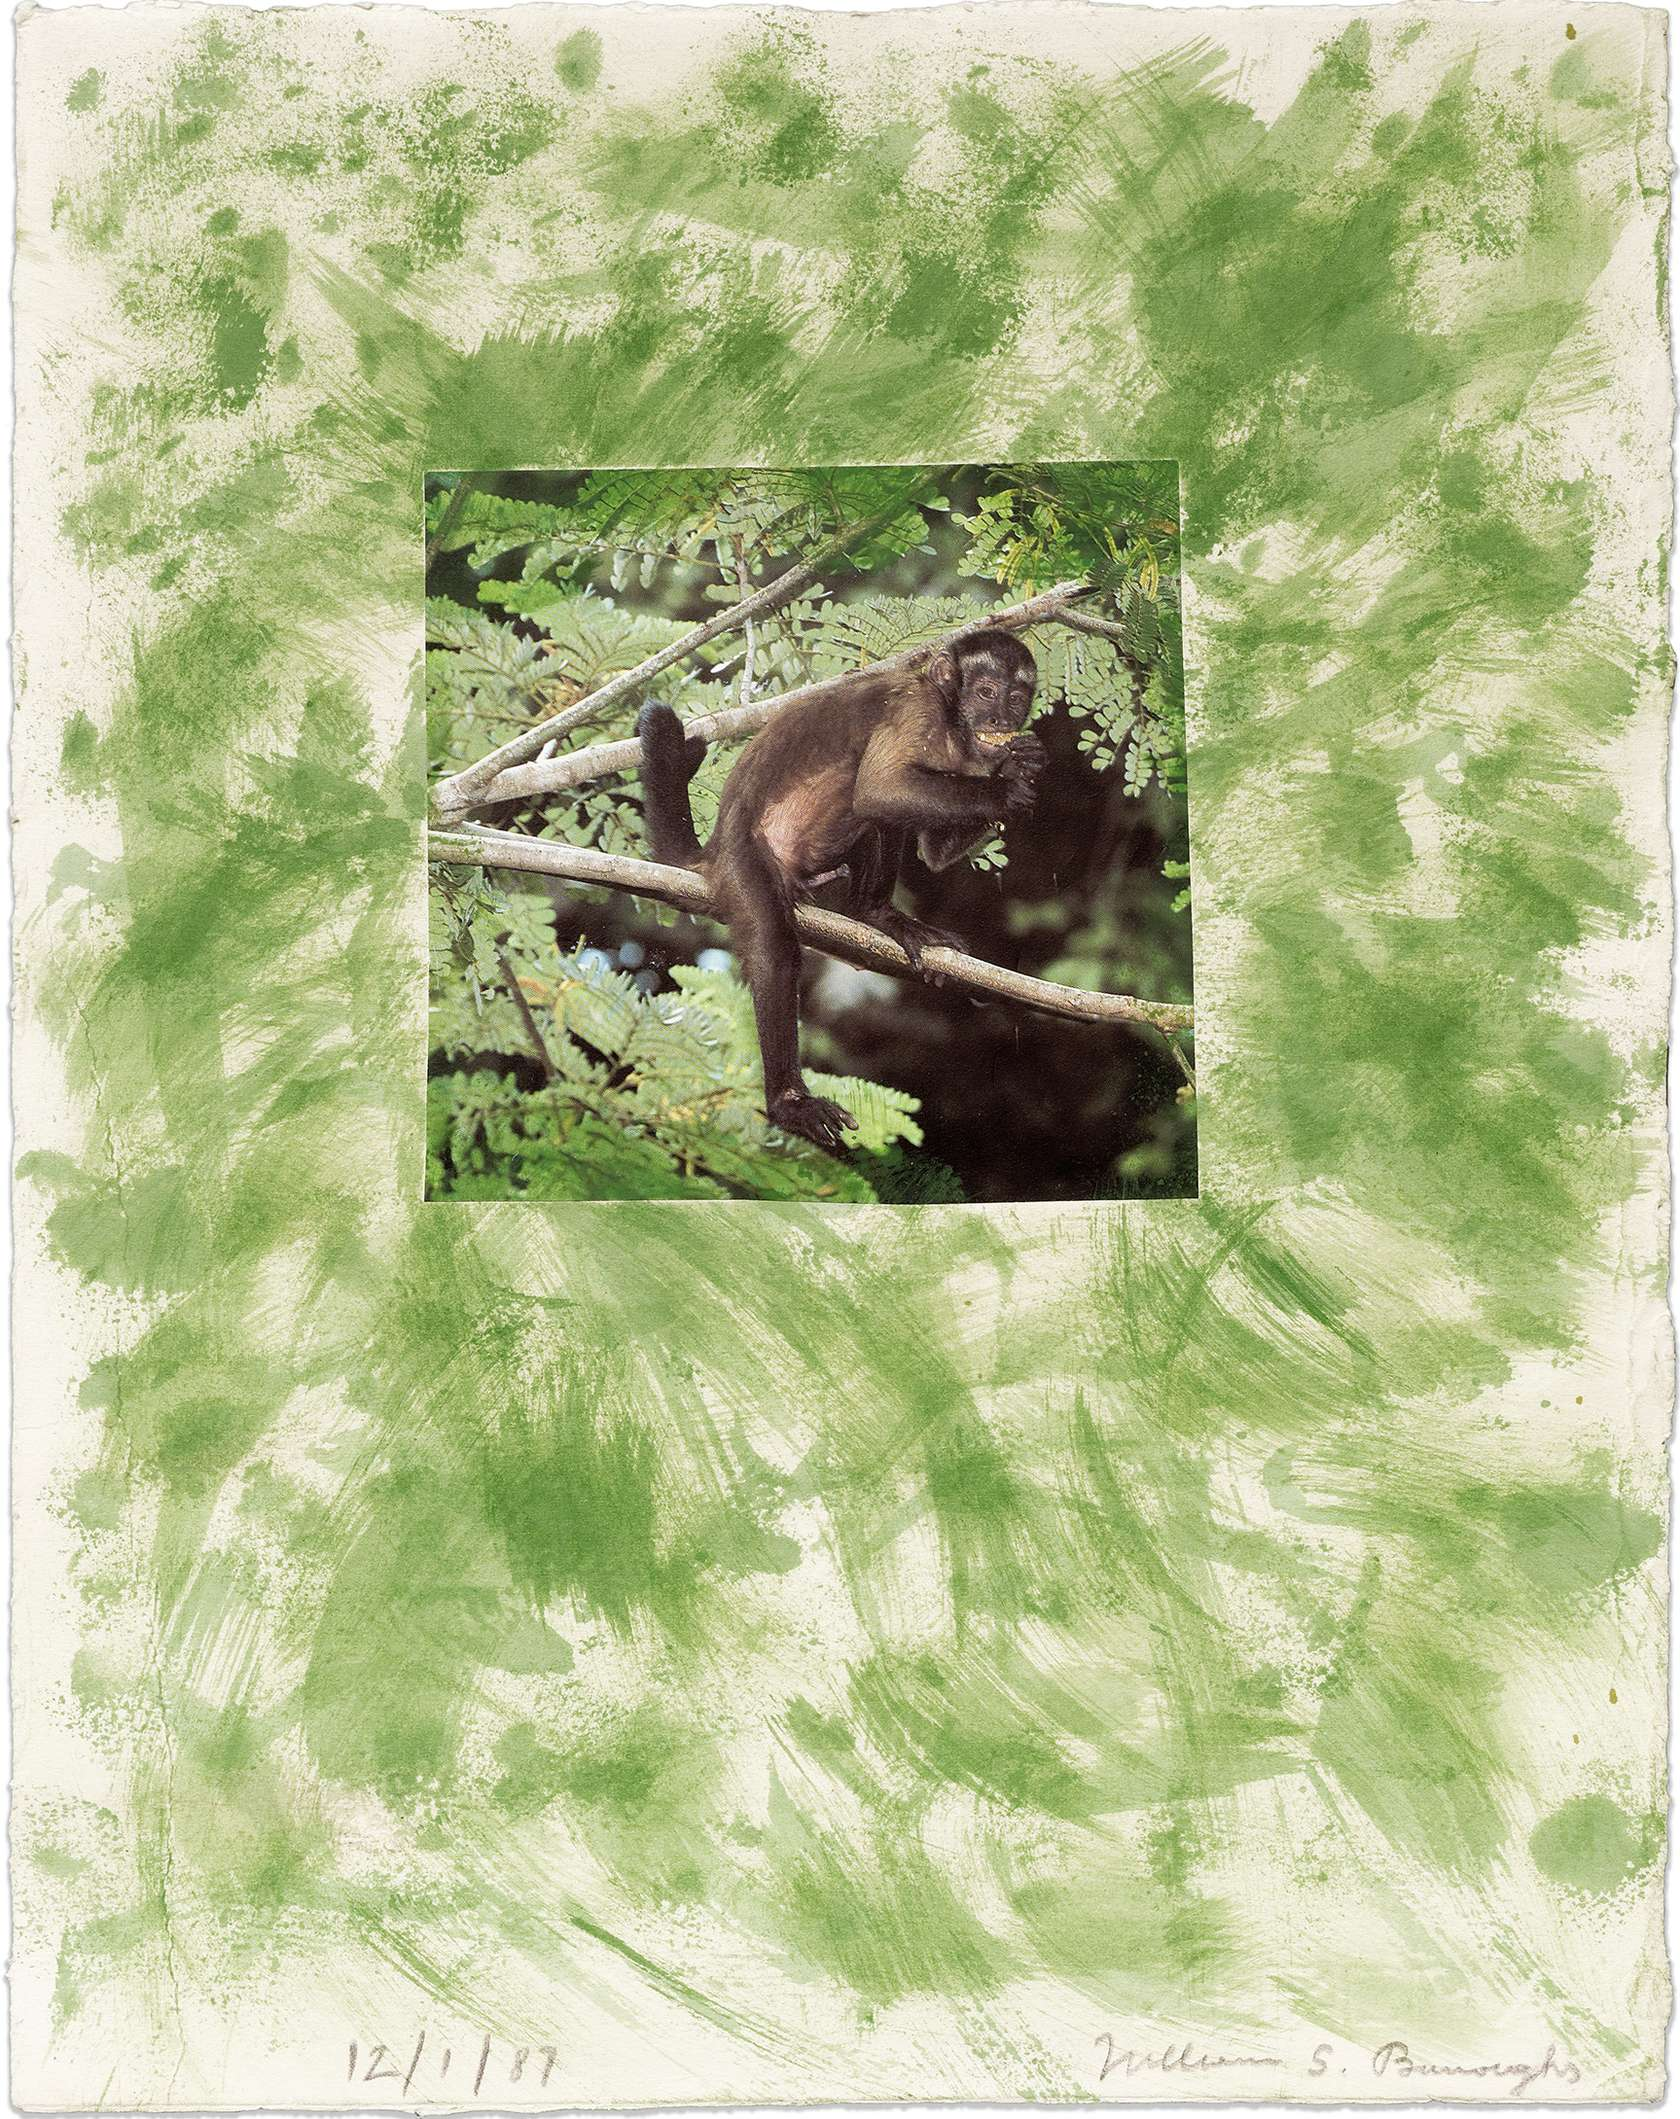 William S. Burroughs, Untitled, 1987 Peinture acrylique et collage photographique sur papier35.5 × 28 cm / 14  × 11  in.